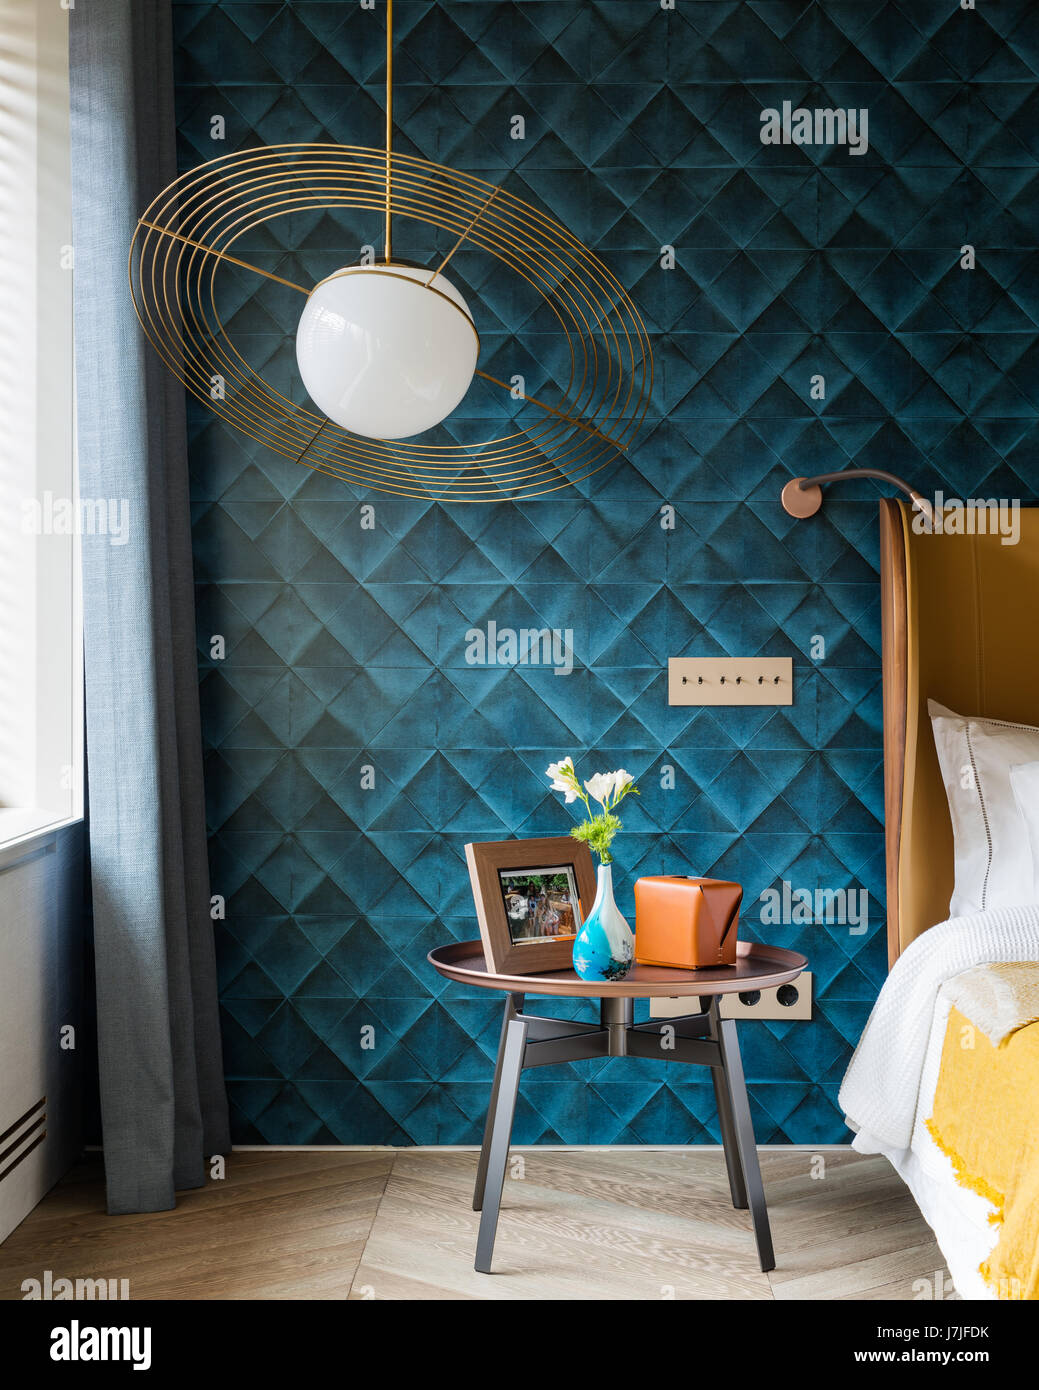 Saturno hanging light with blue quilted style wallpaper - Stock Image